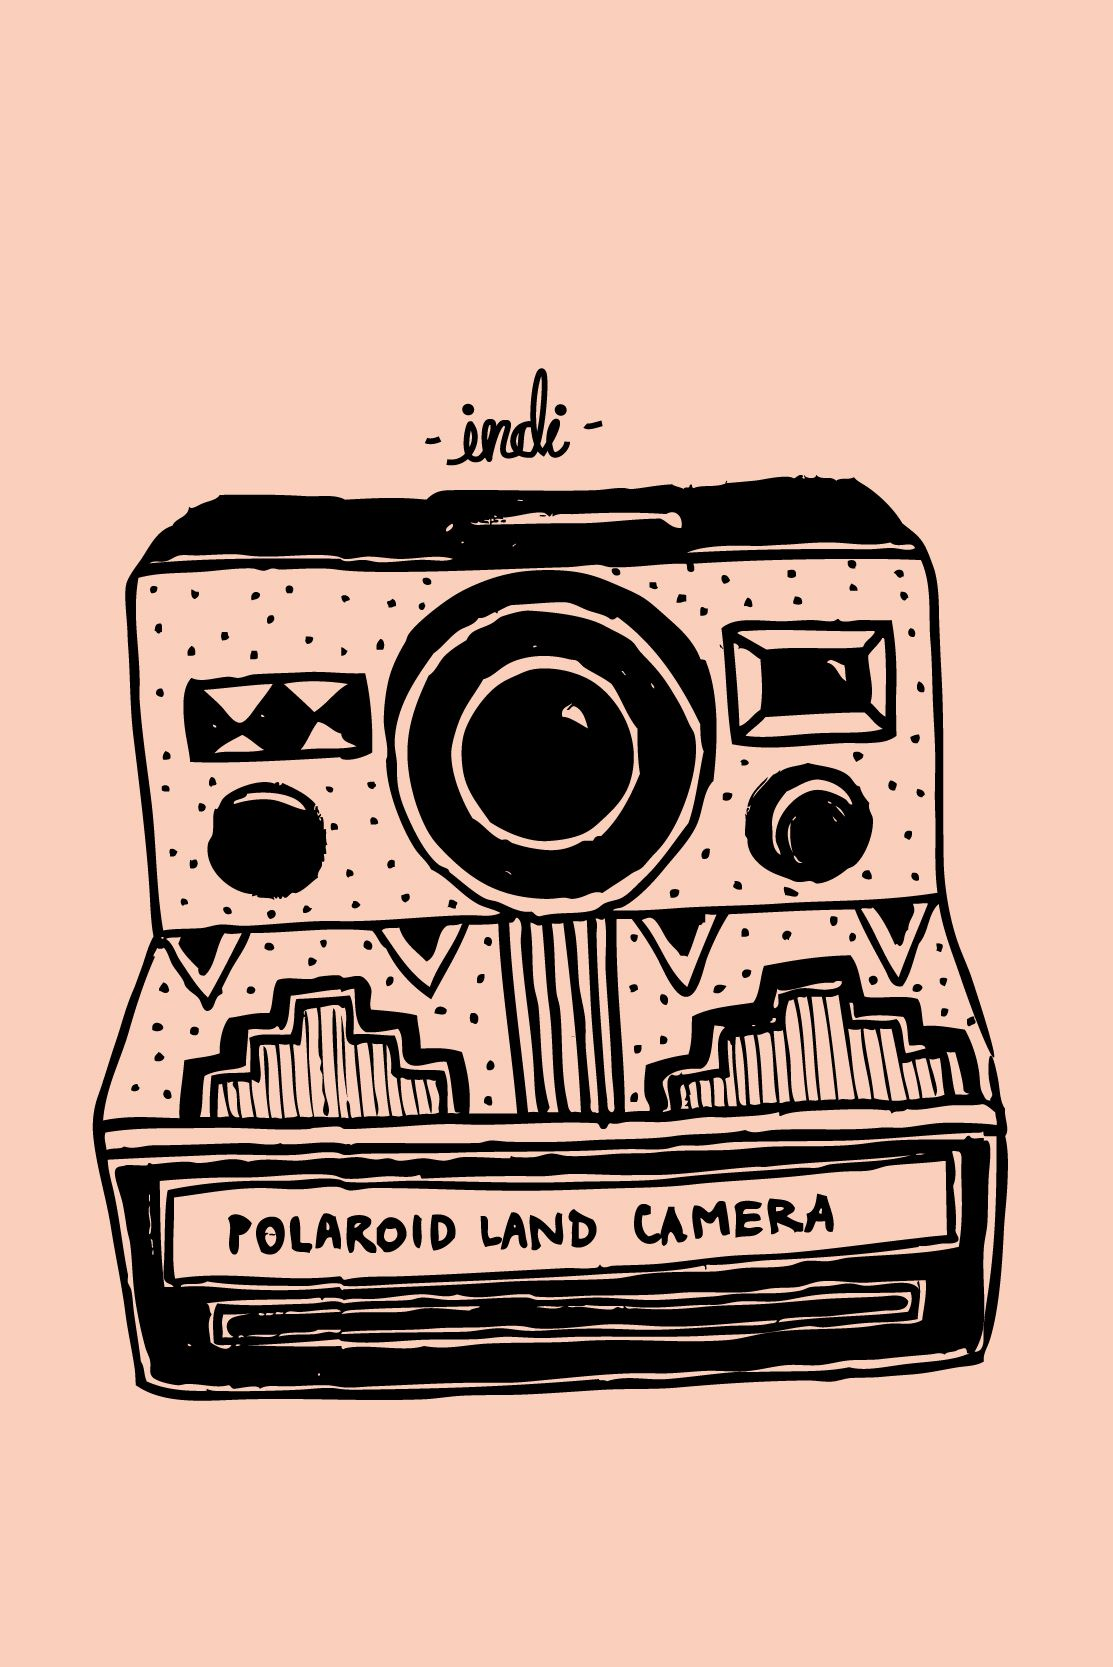 Vintage Cameras Wallpapers For Iphone Or Ipod On Behance Camera Wallpaper Cute Wallpaper For Phone Vintage Cameras